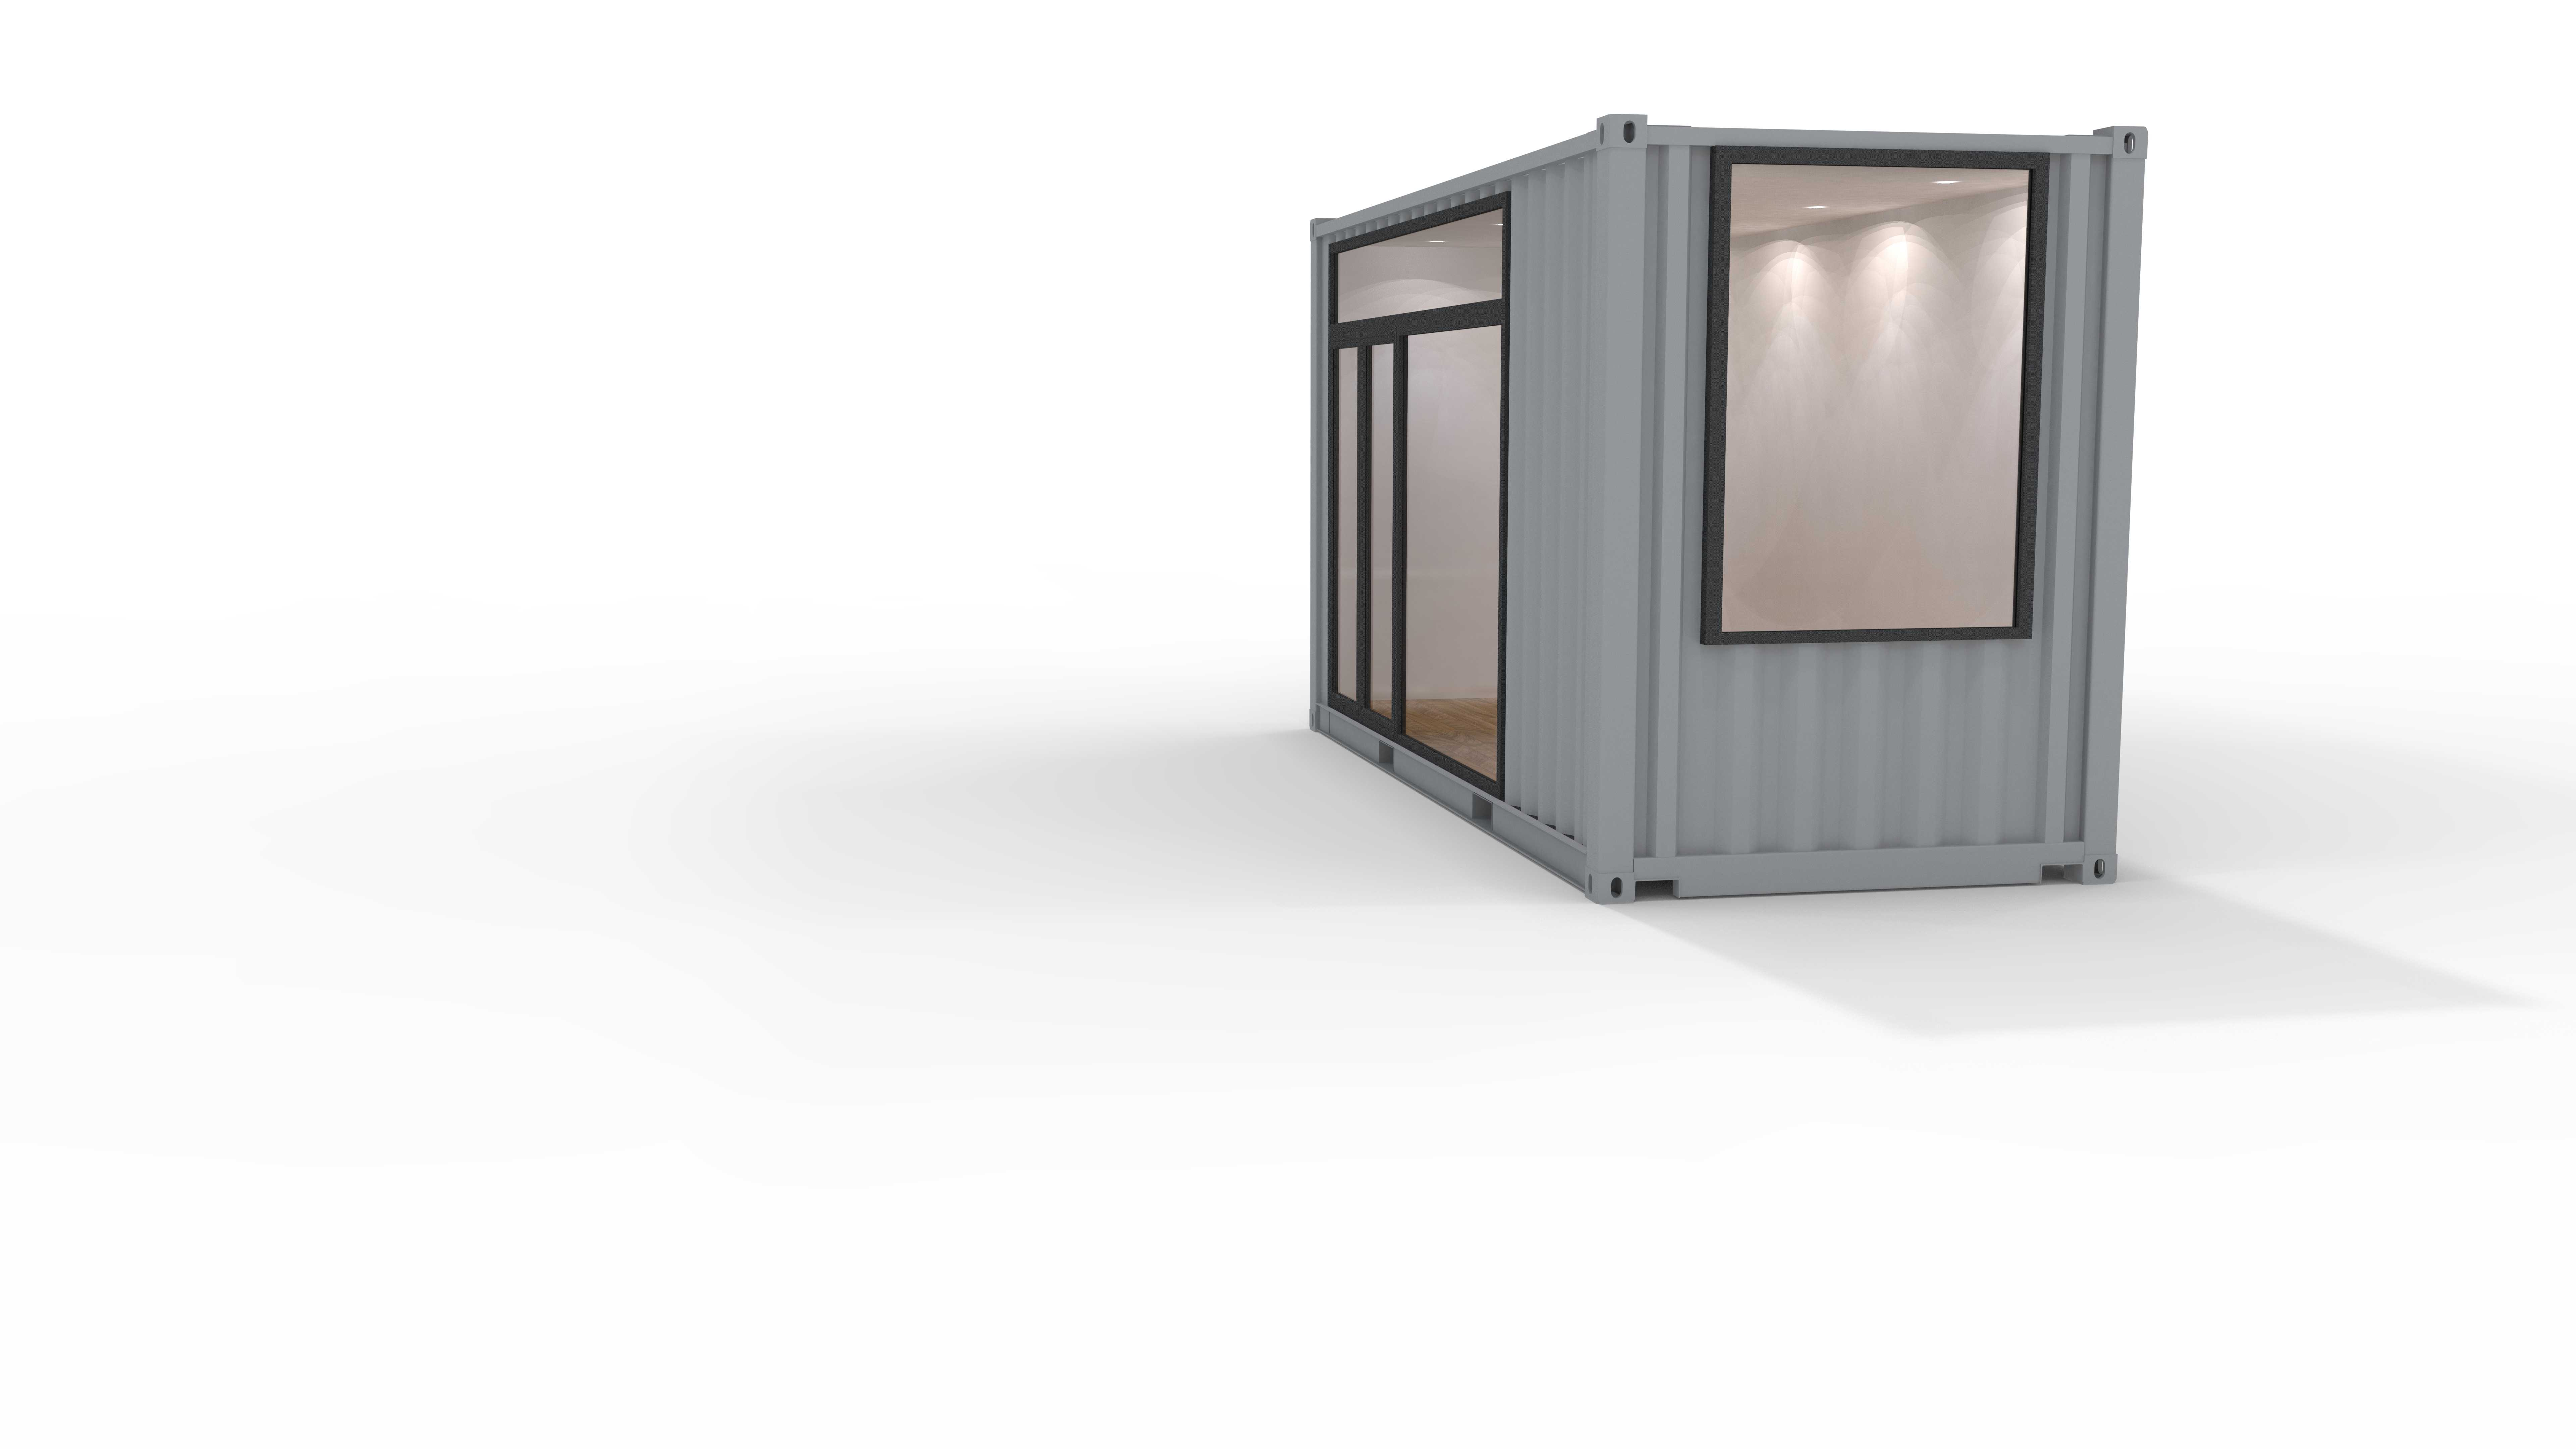 shipping container conversion design image